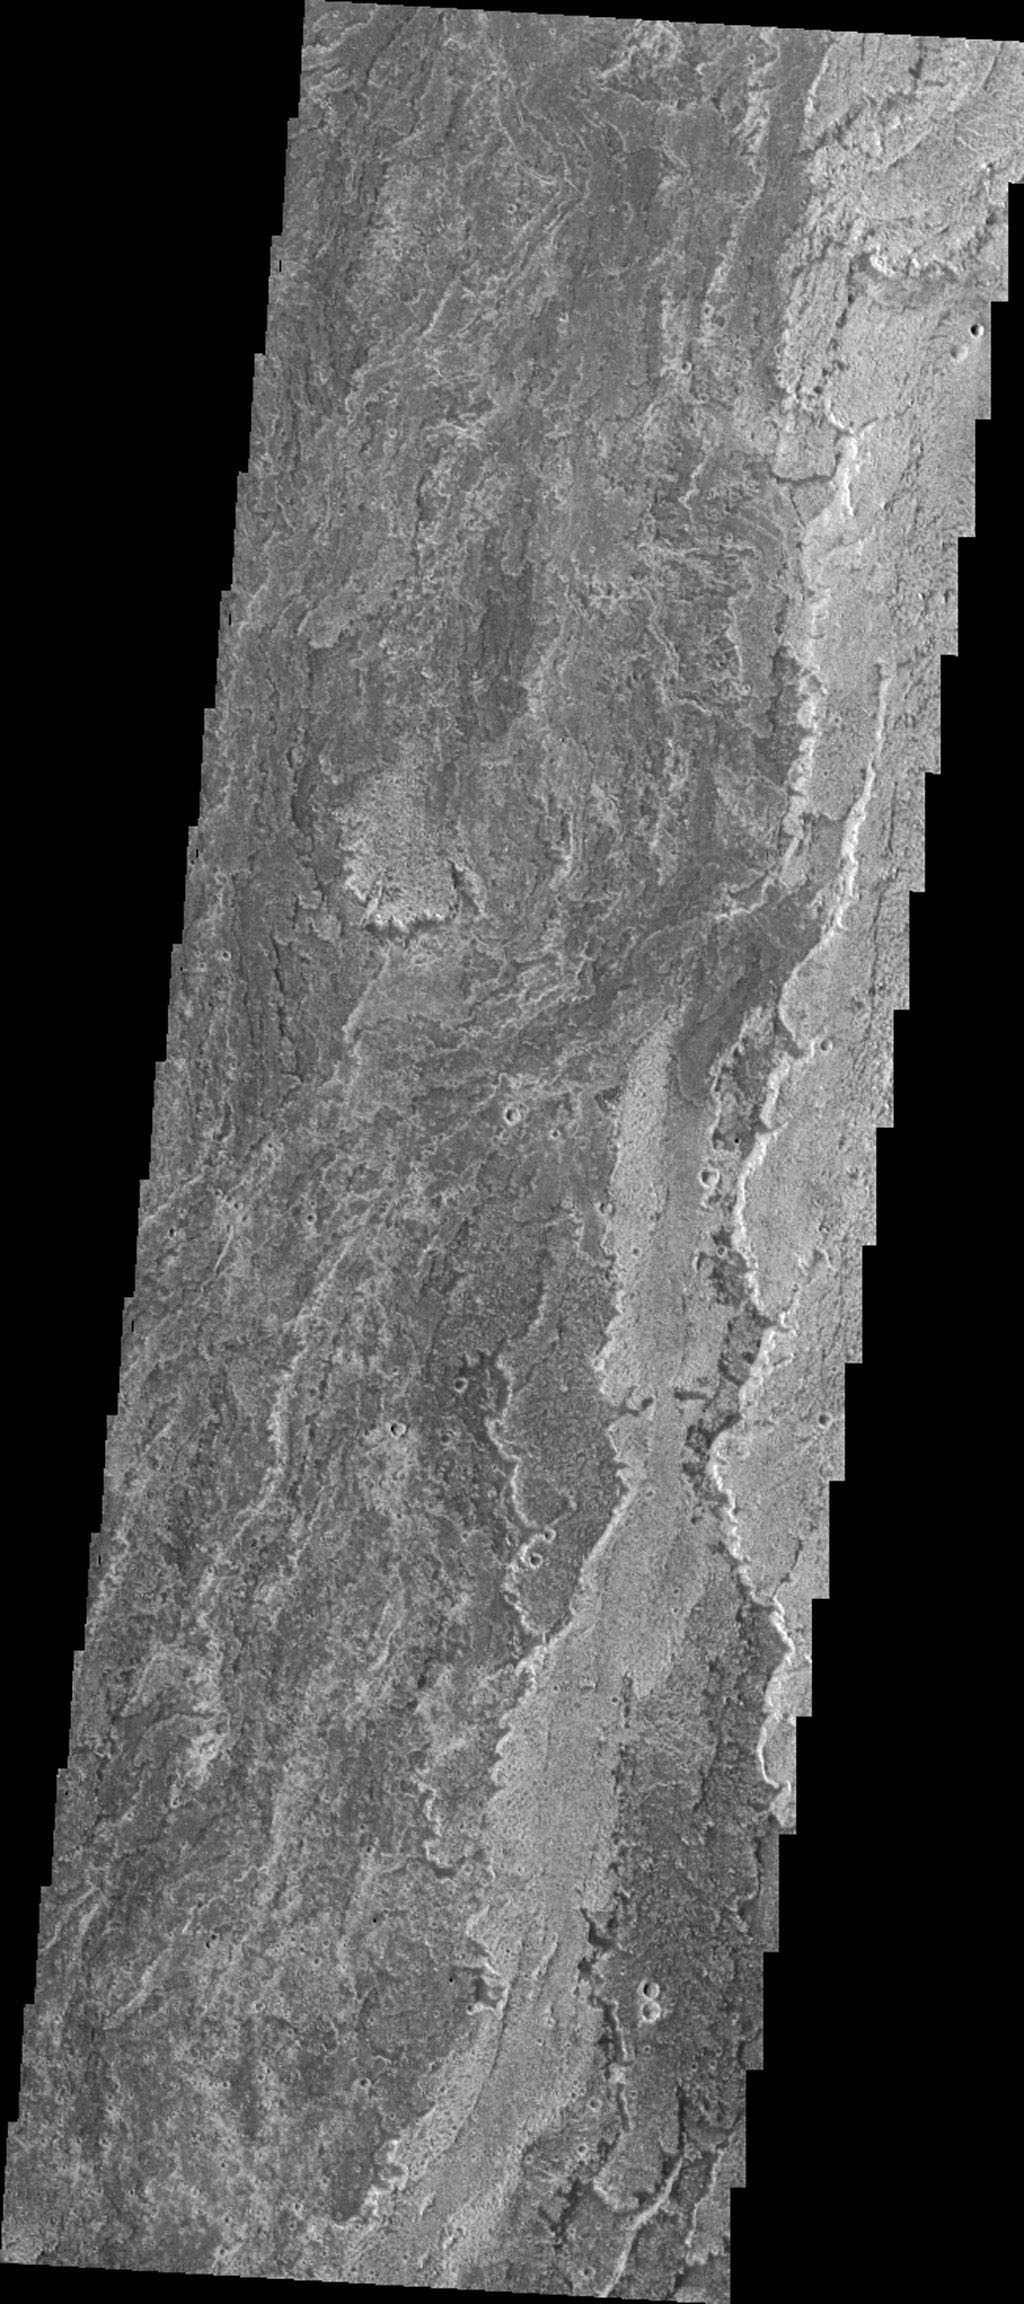 This image from NASA's 2001 Mars Odyssey spacecraft shows lava flows from Arsia Mons.